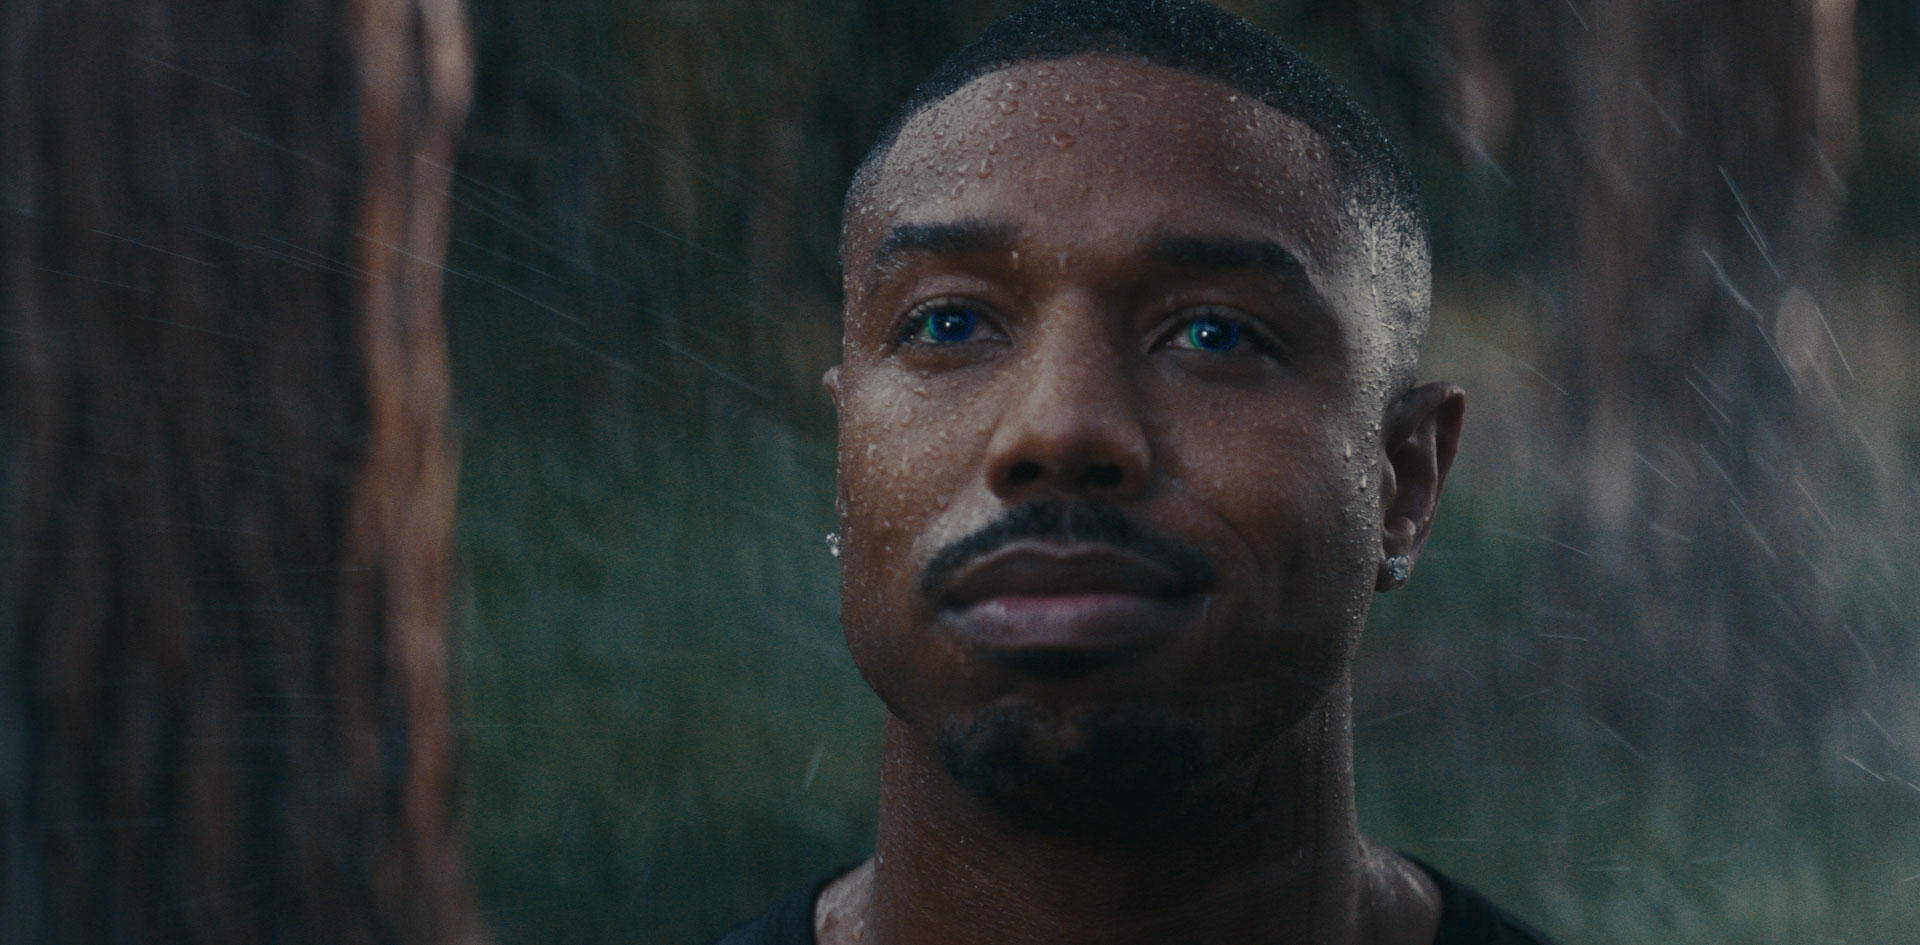 Michael B. Jordan Is Sexy Alexa in Amazon's Hilarious Super Bowl Ad